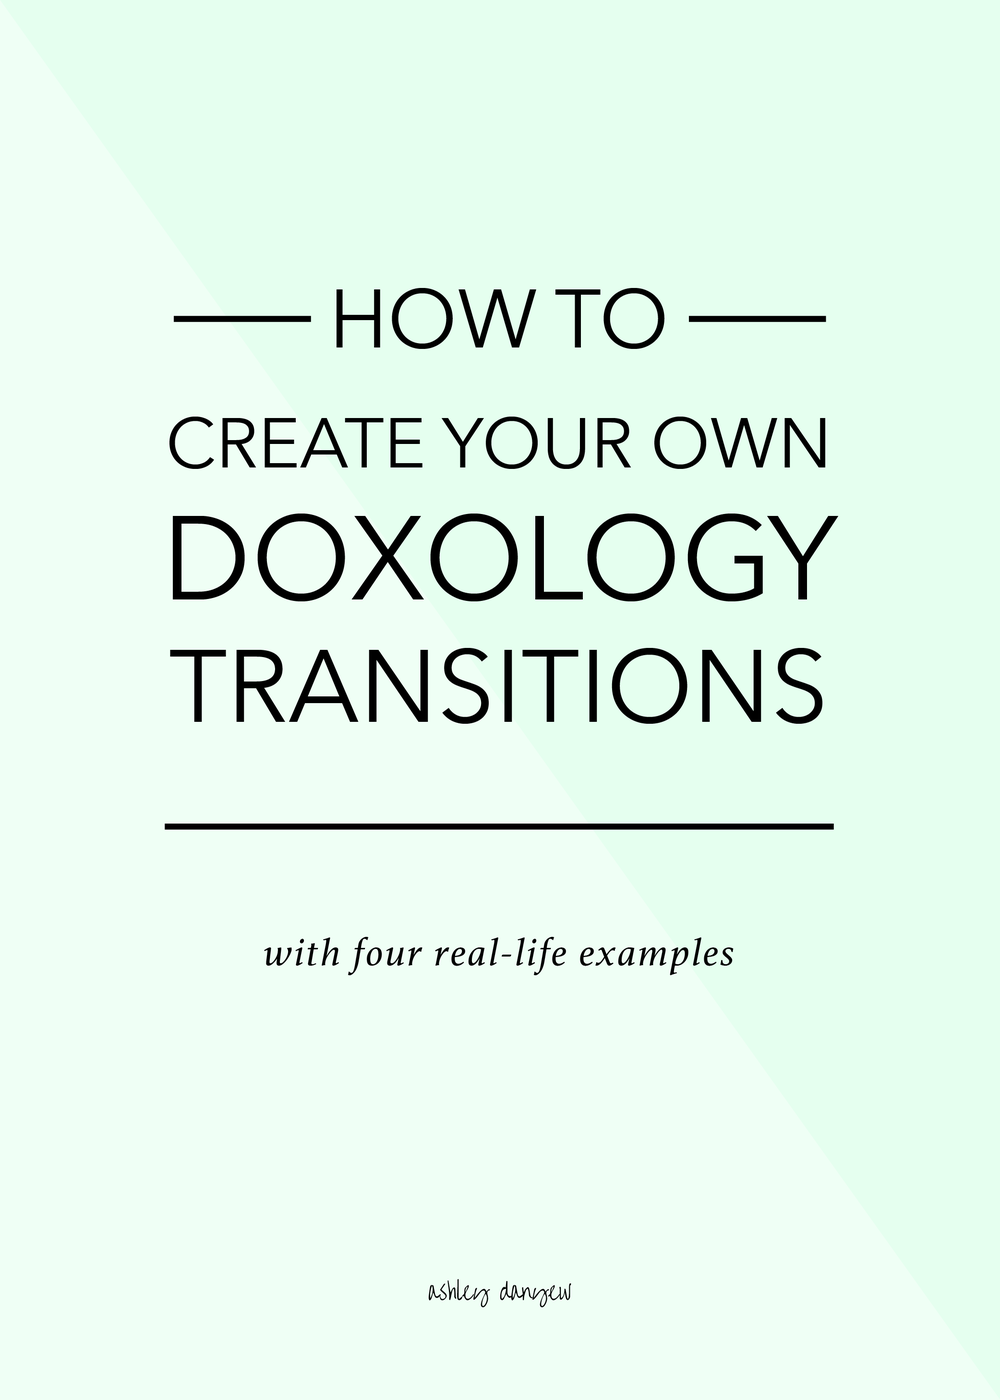 Copy of How to Create Your Own Doxology Transitions